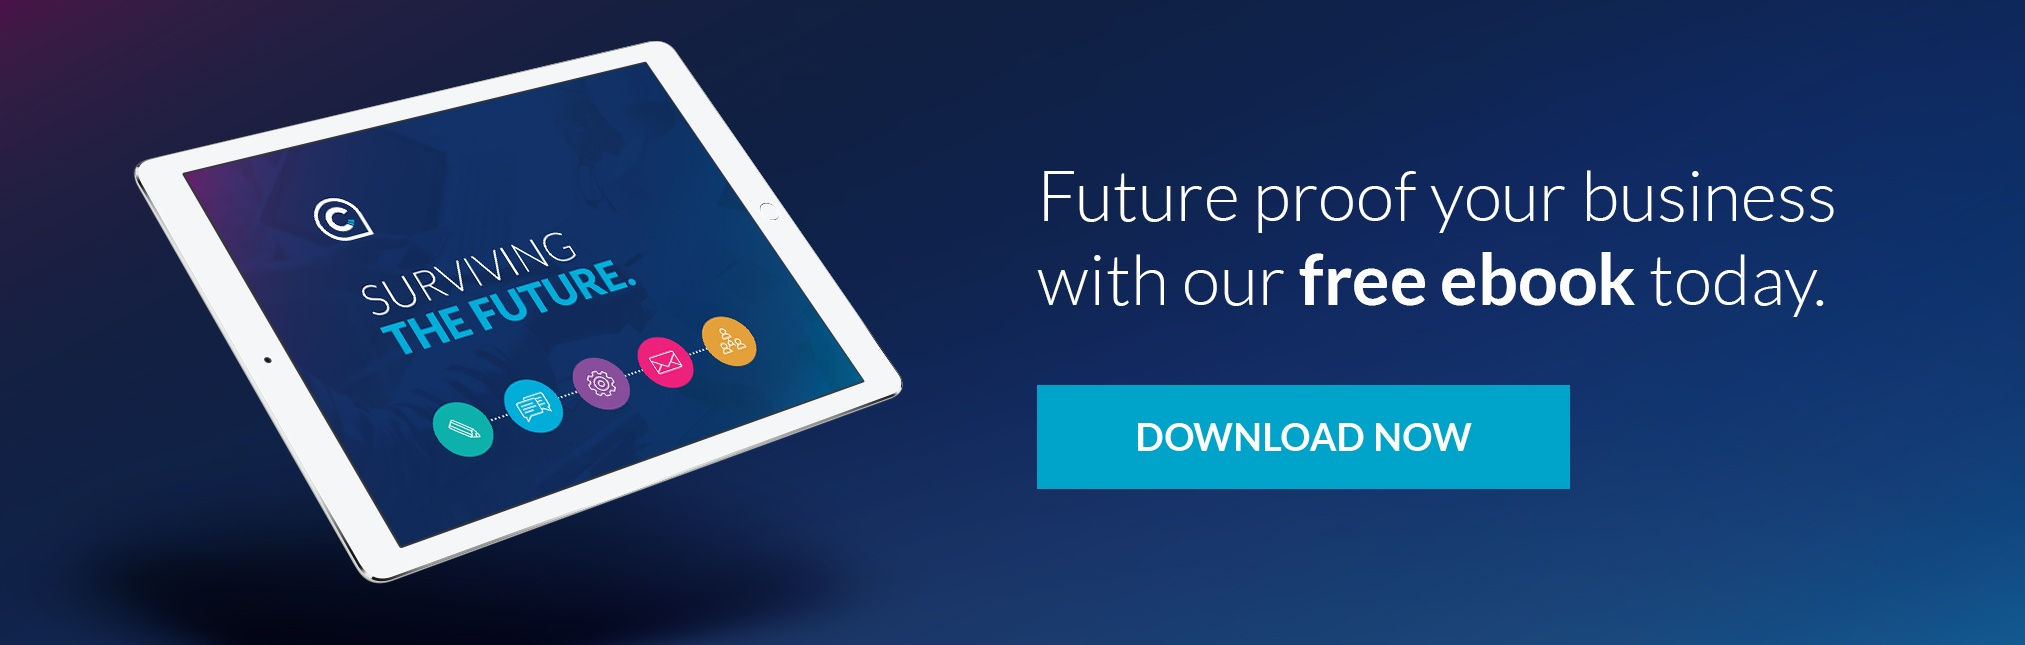 Future proof your business with our free ebook today. Download now.